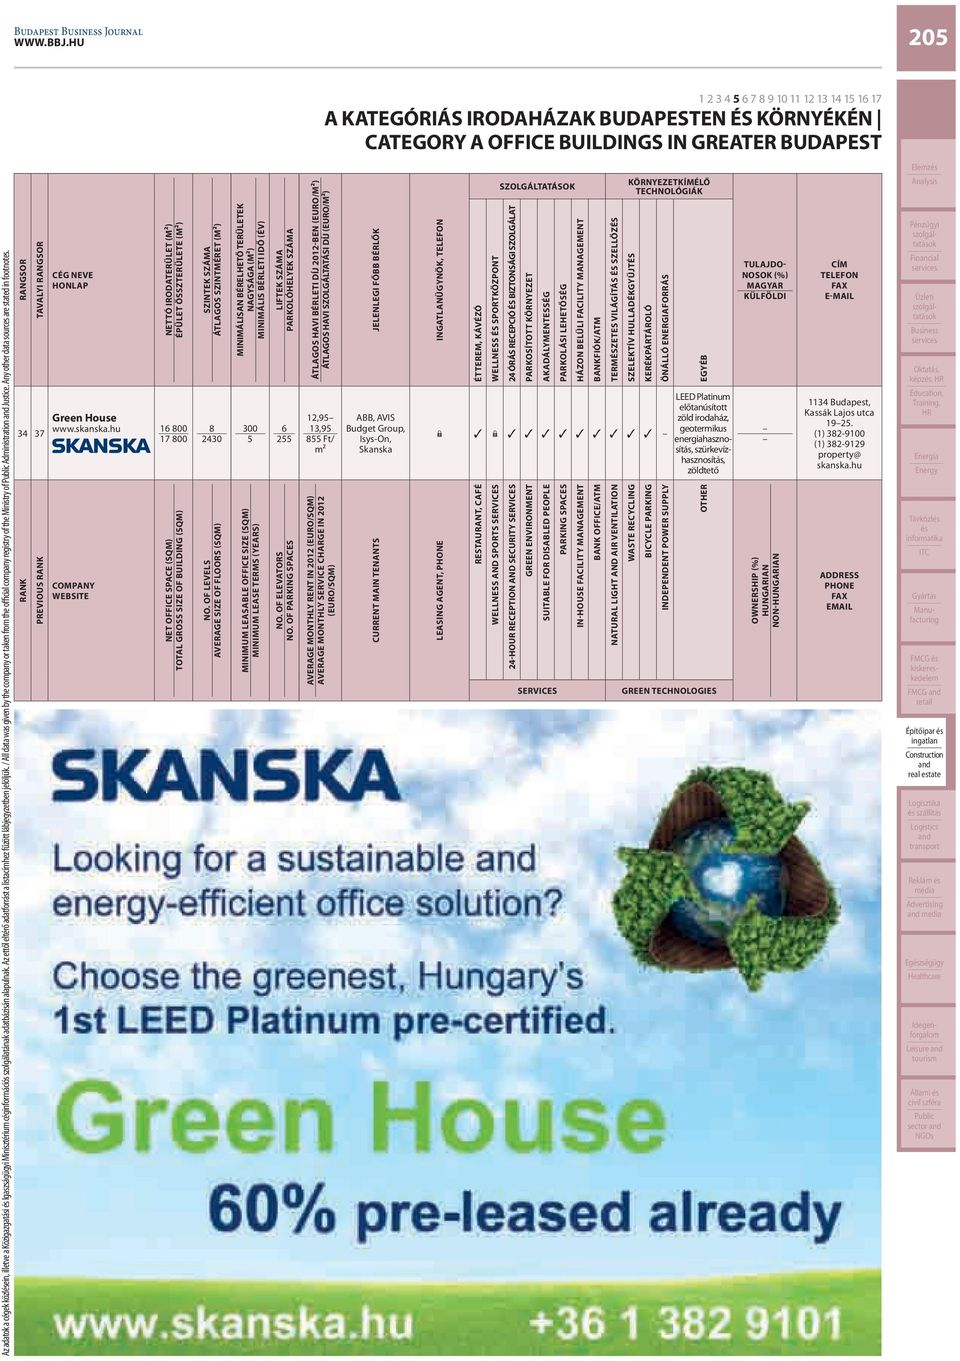 Any other data sources are stated in footnotes. Green House www.skanska.hu 00 00 0 00 NO.